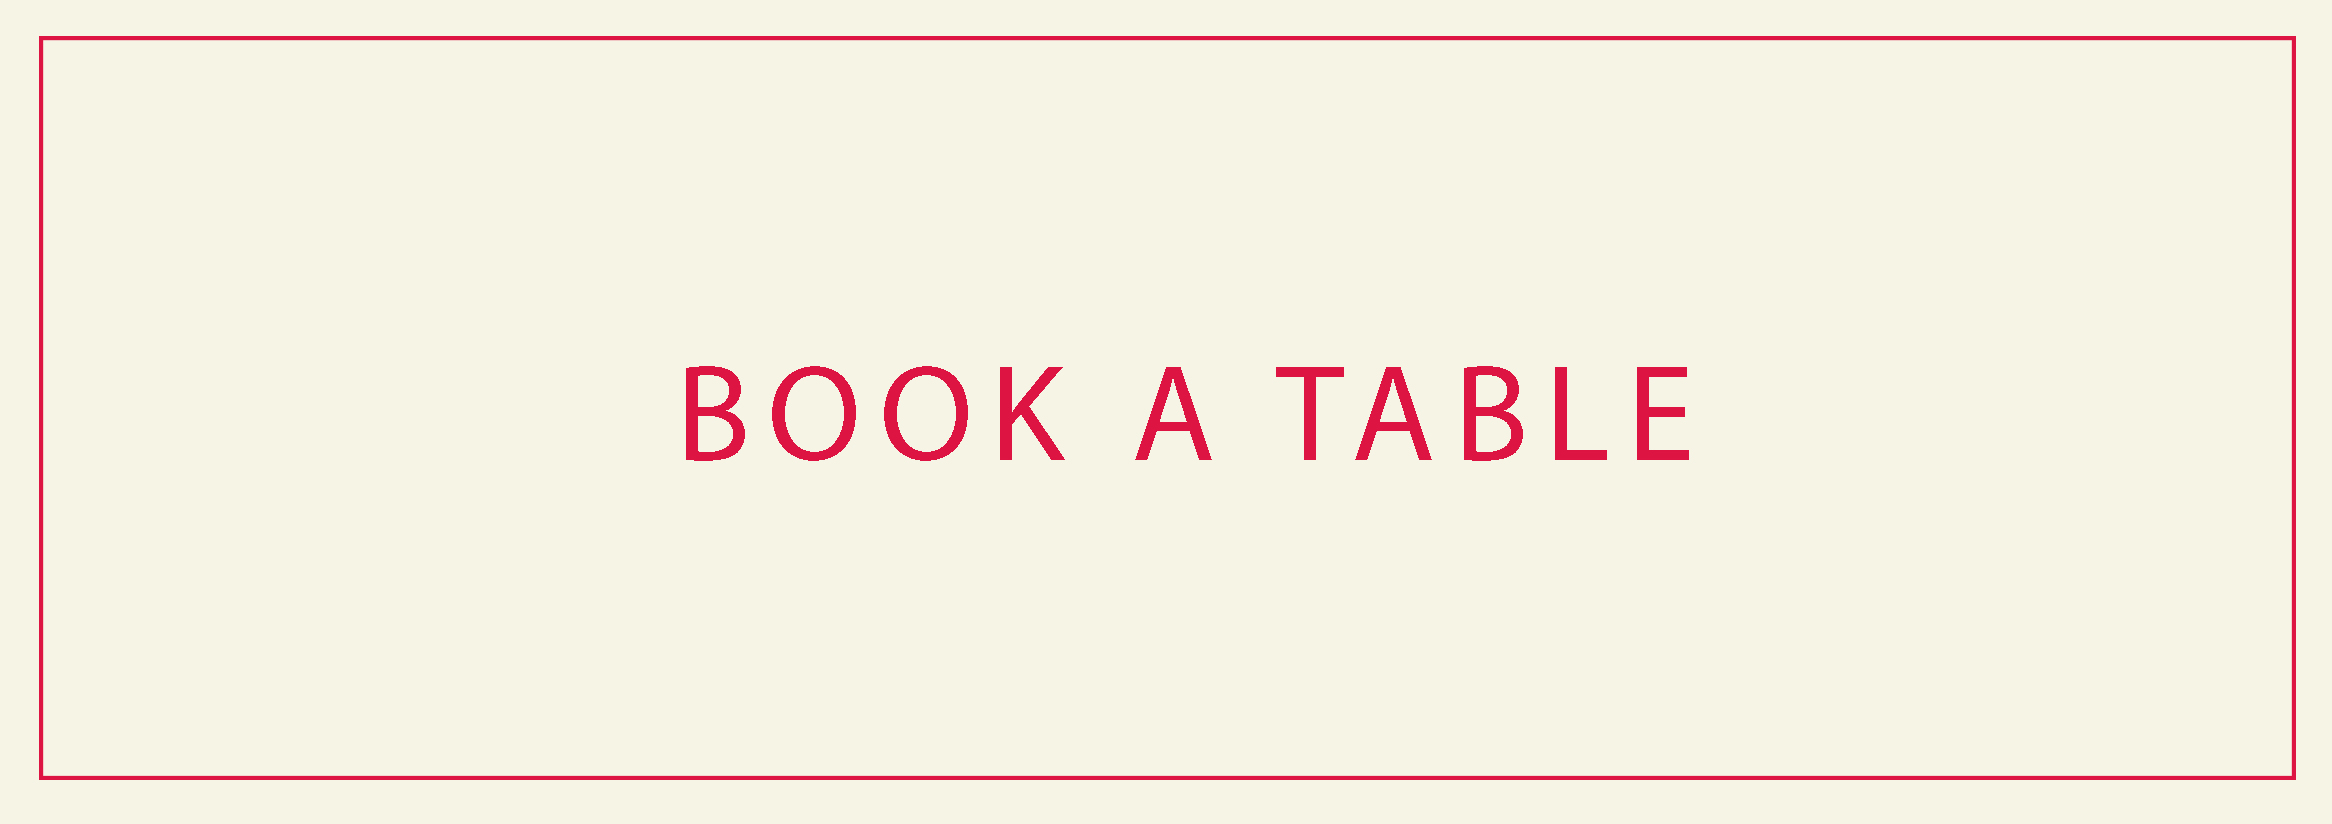 book a table valentines